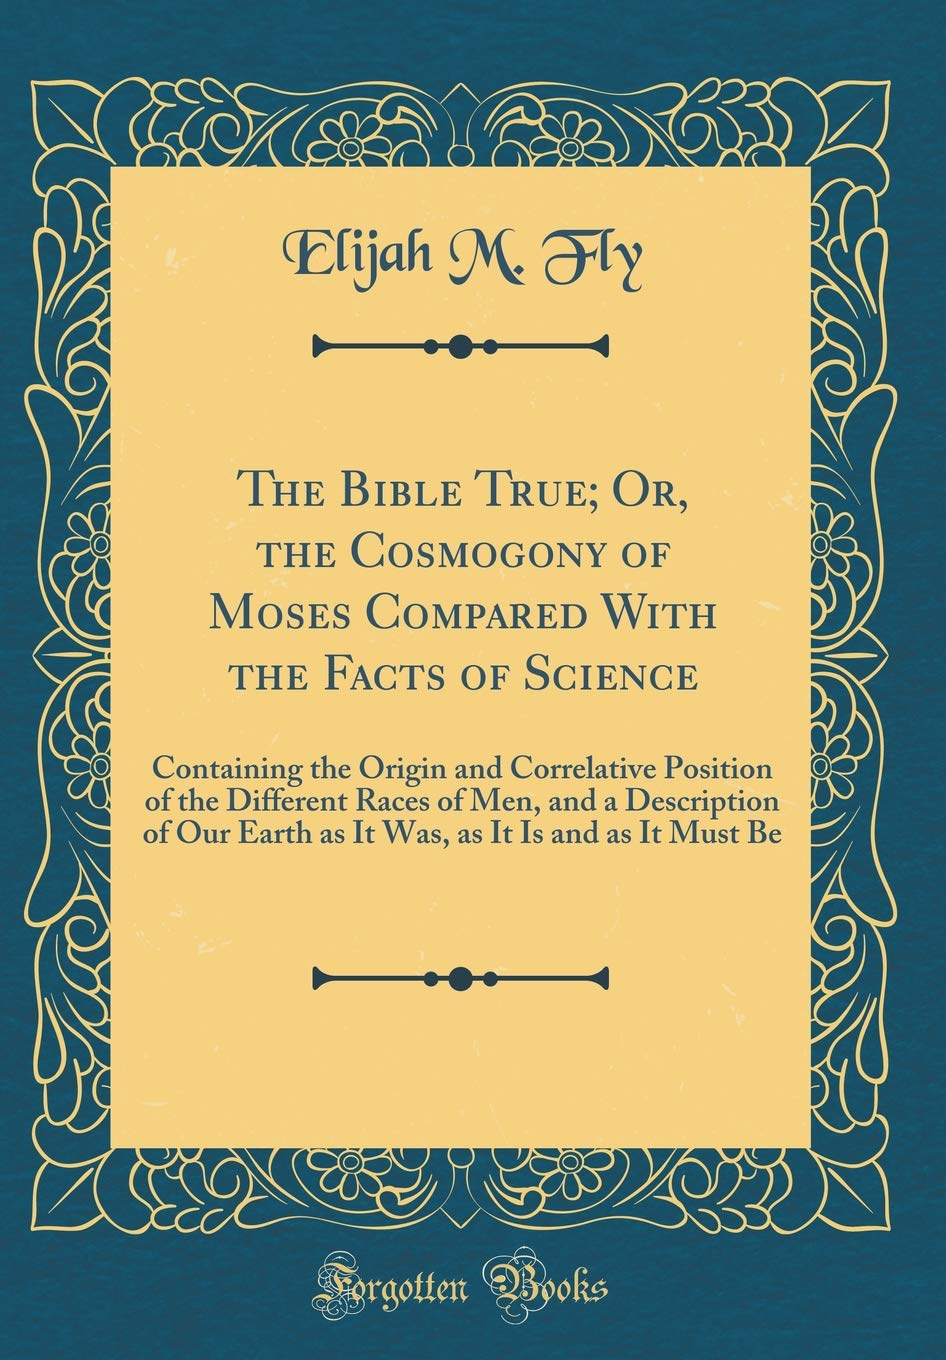 Download The Bible True; Or, the Cosmogony of Moses Compared With the Facts of Science: Containing the Origin and Correlative Position of the Different Races ... as It Is and as It Must Be (Classic Reprint) PDF